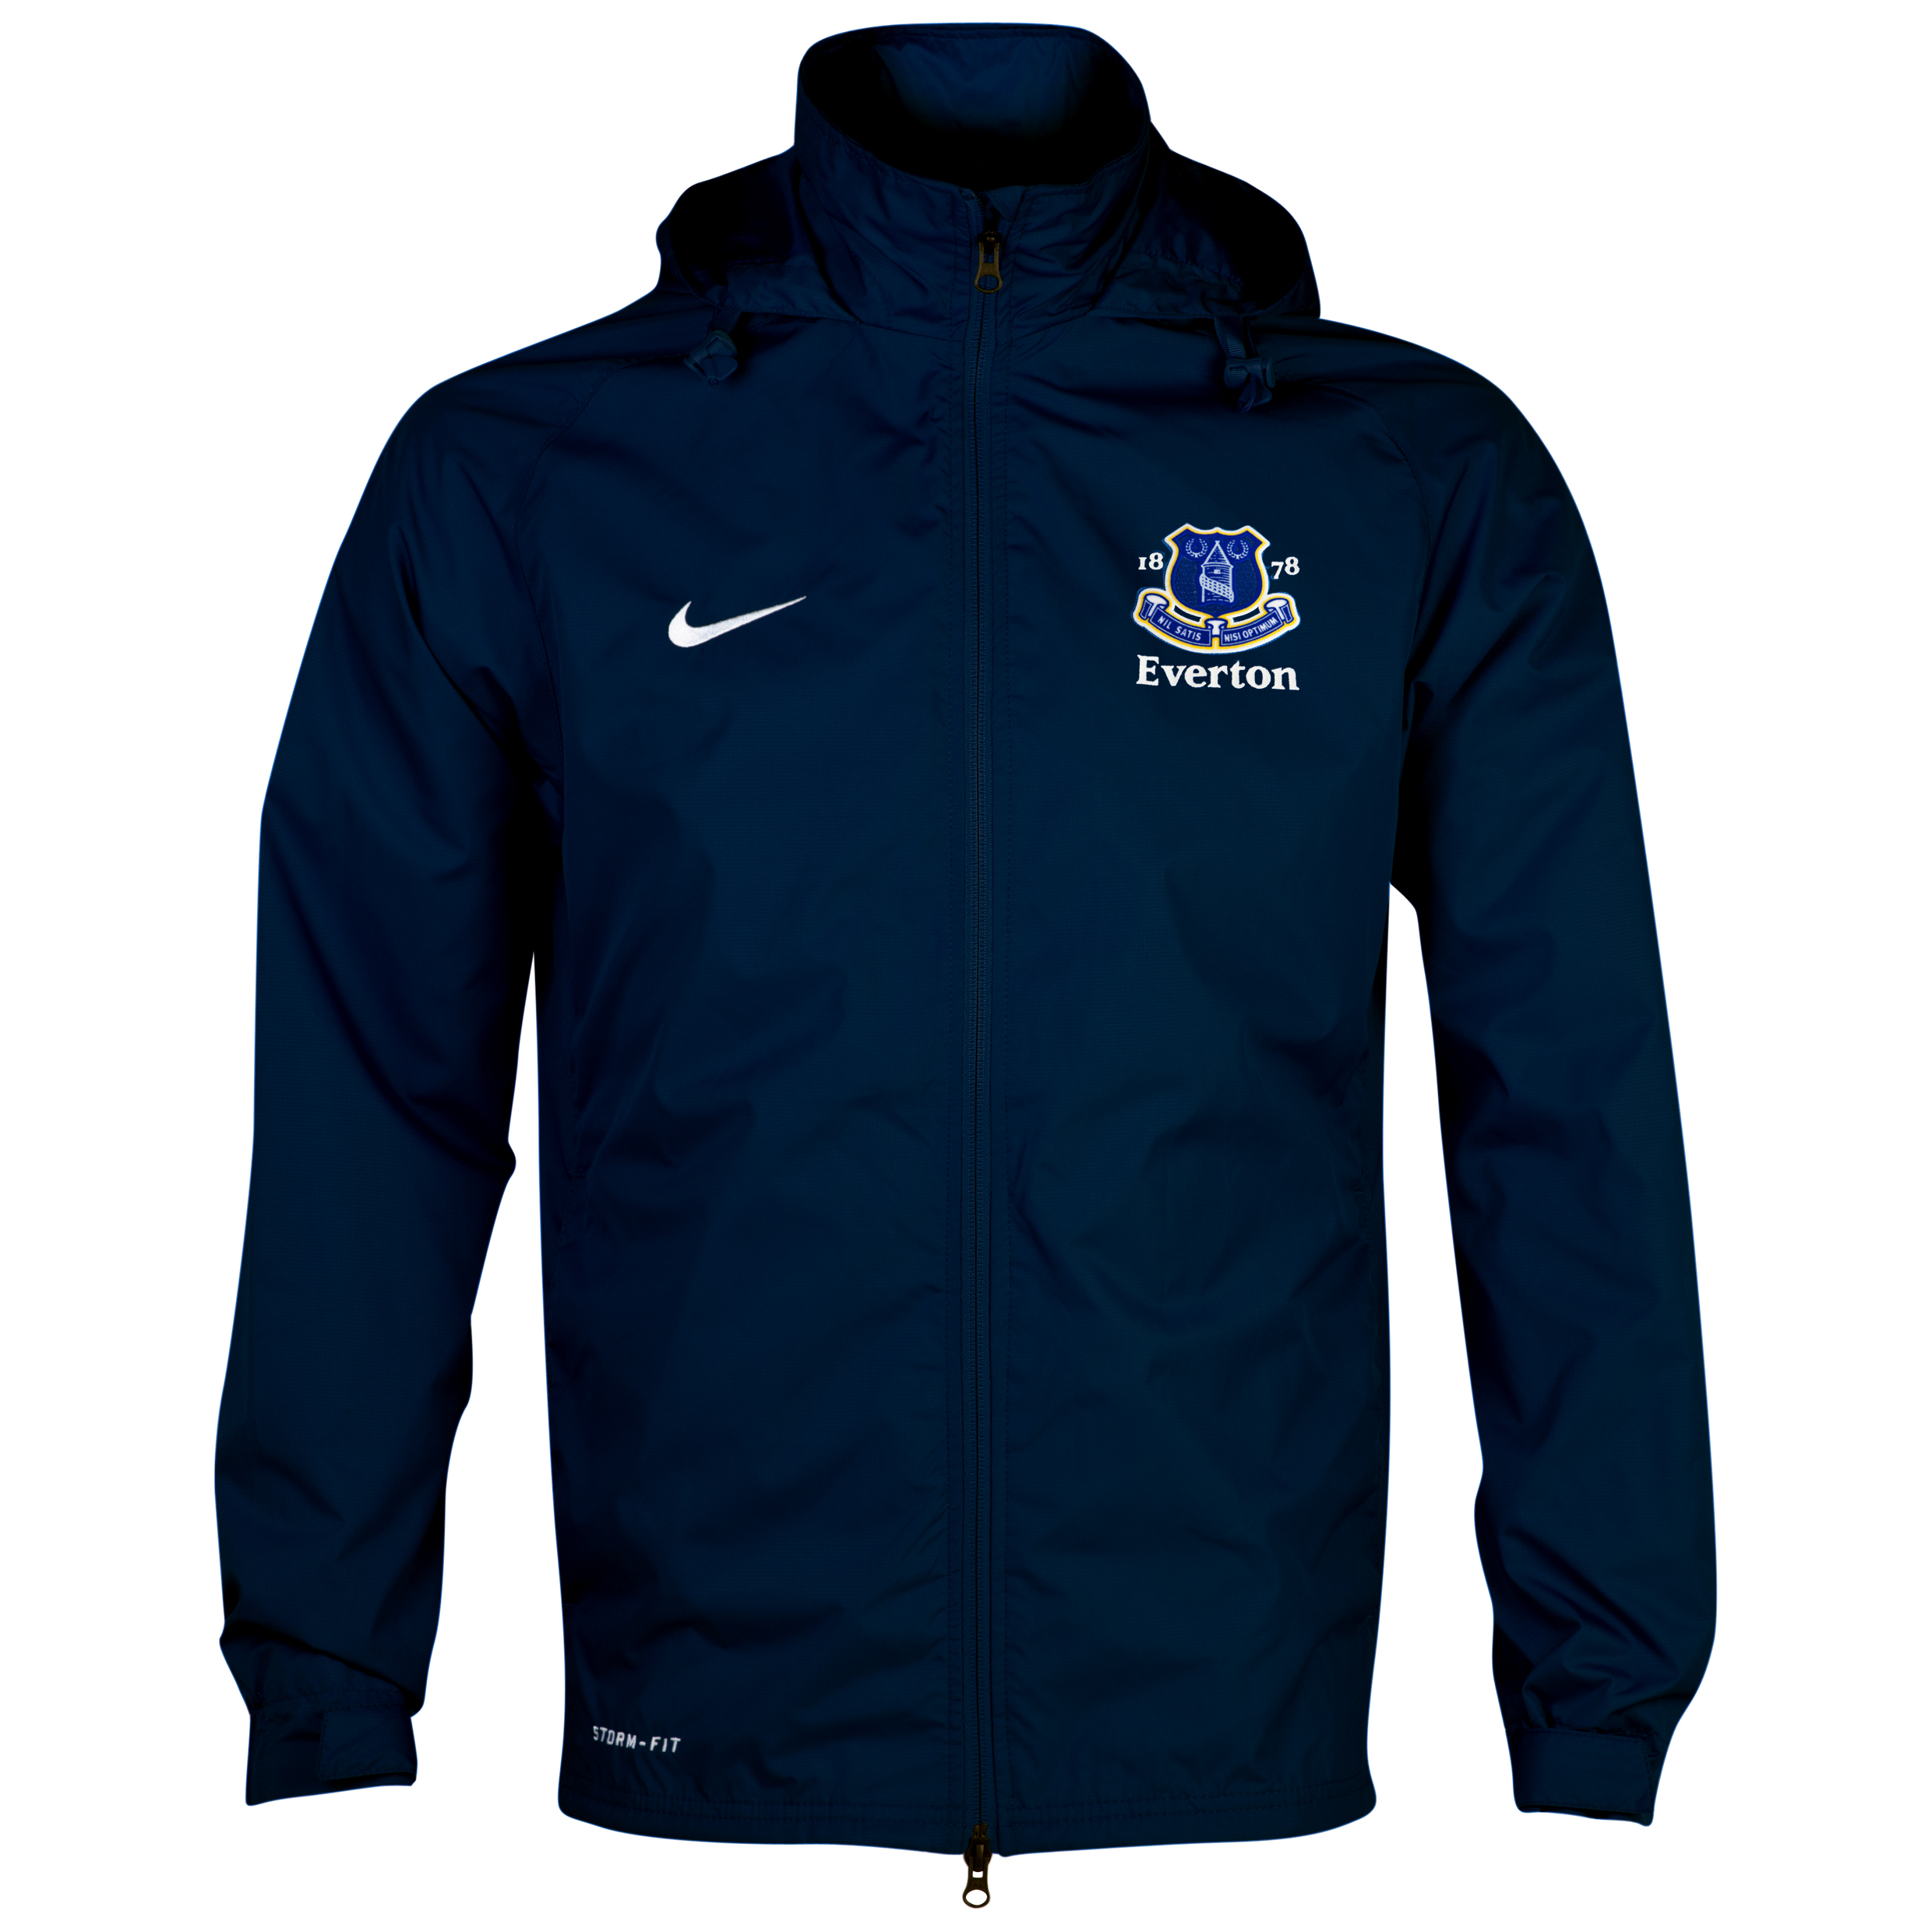 Everton Hooded Rain Jacket  - Obsidian/White